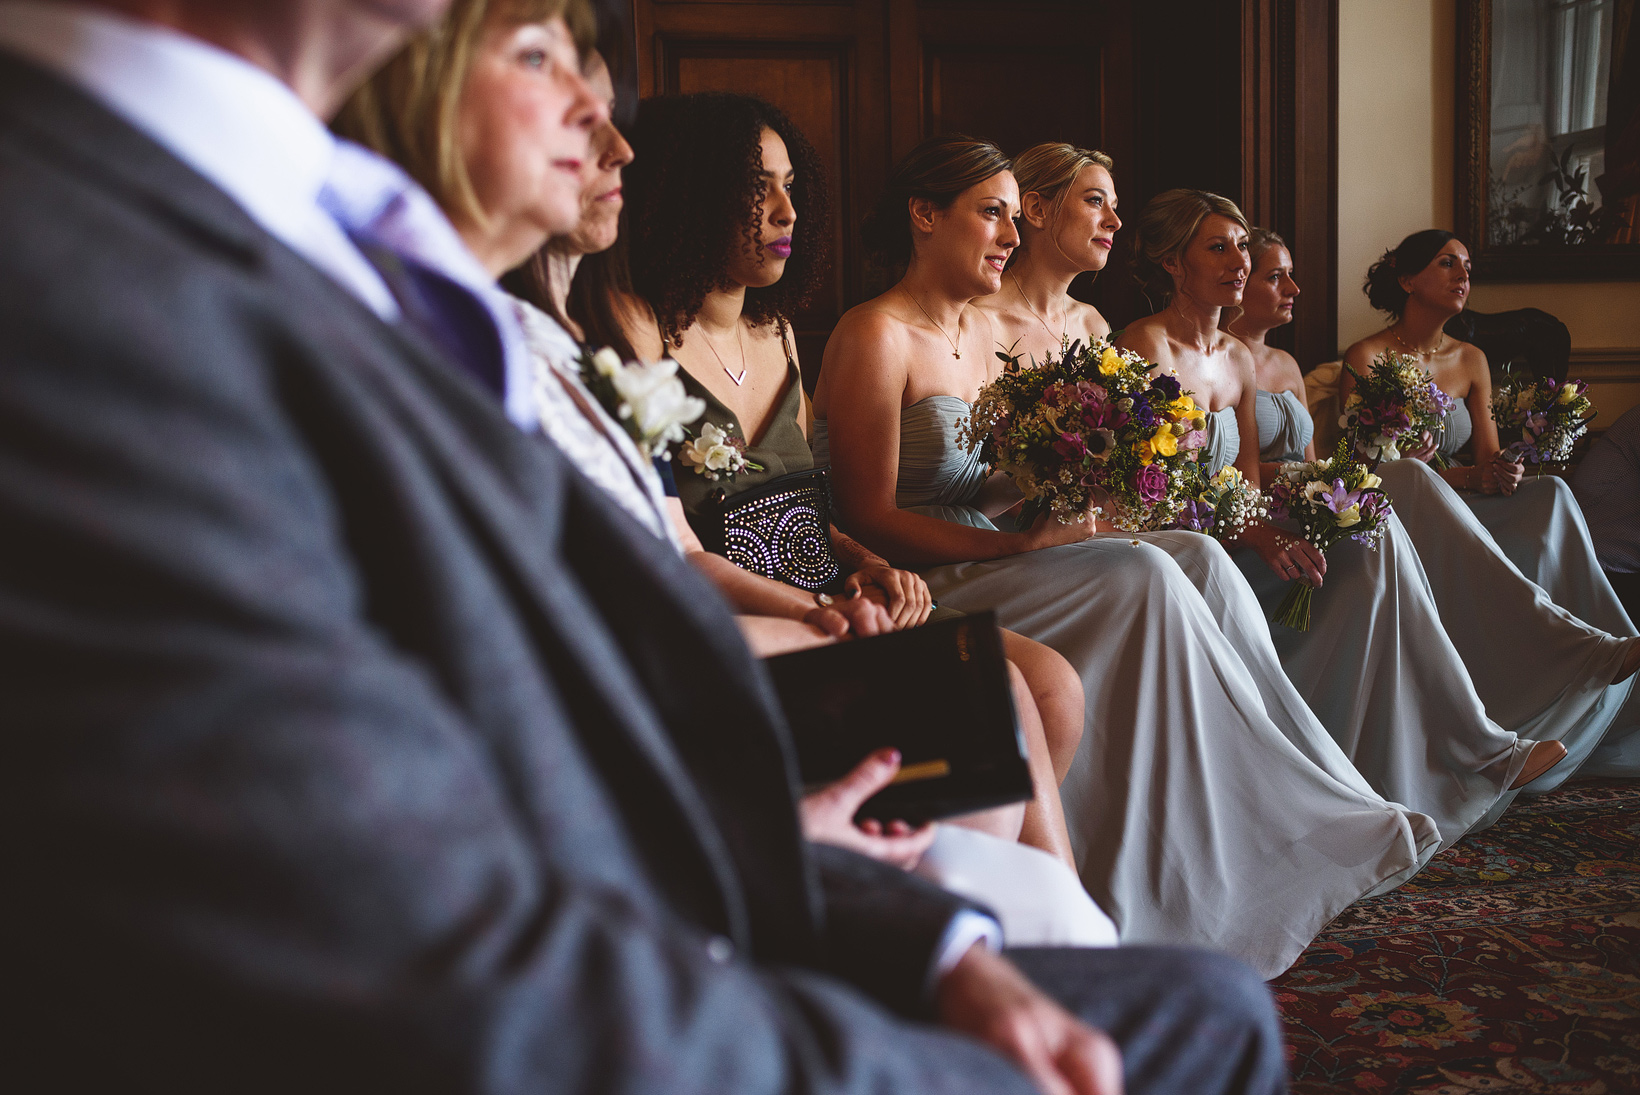 Wedding Ceremony At Walcot Hall